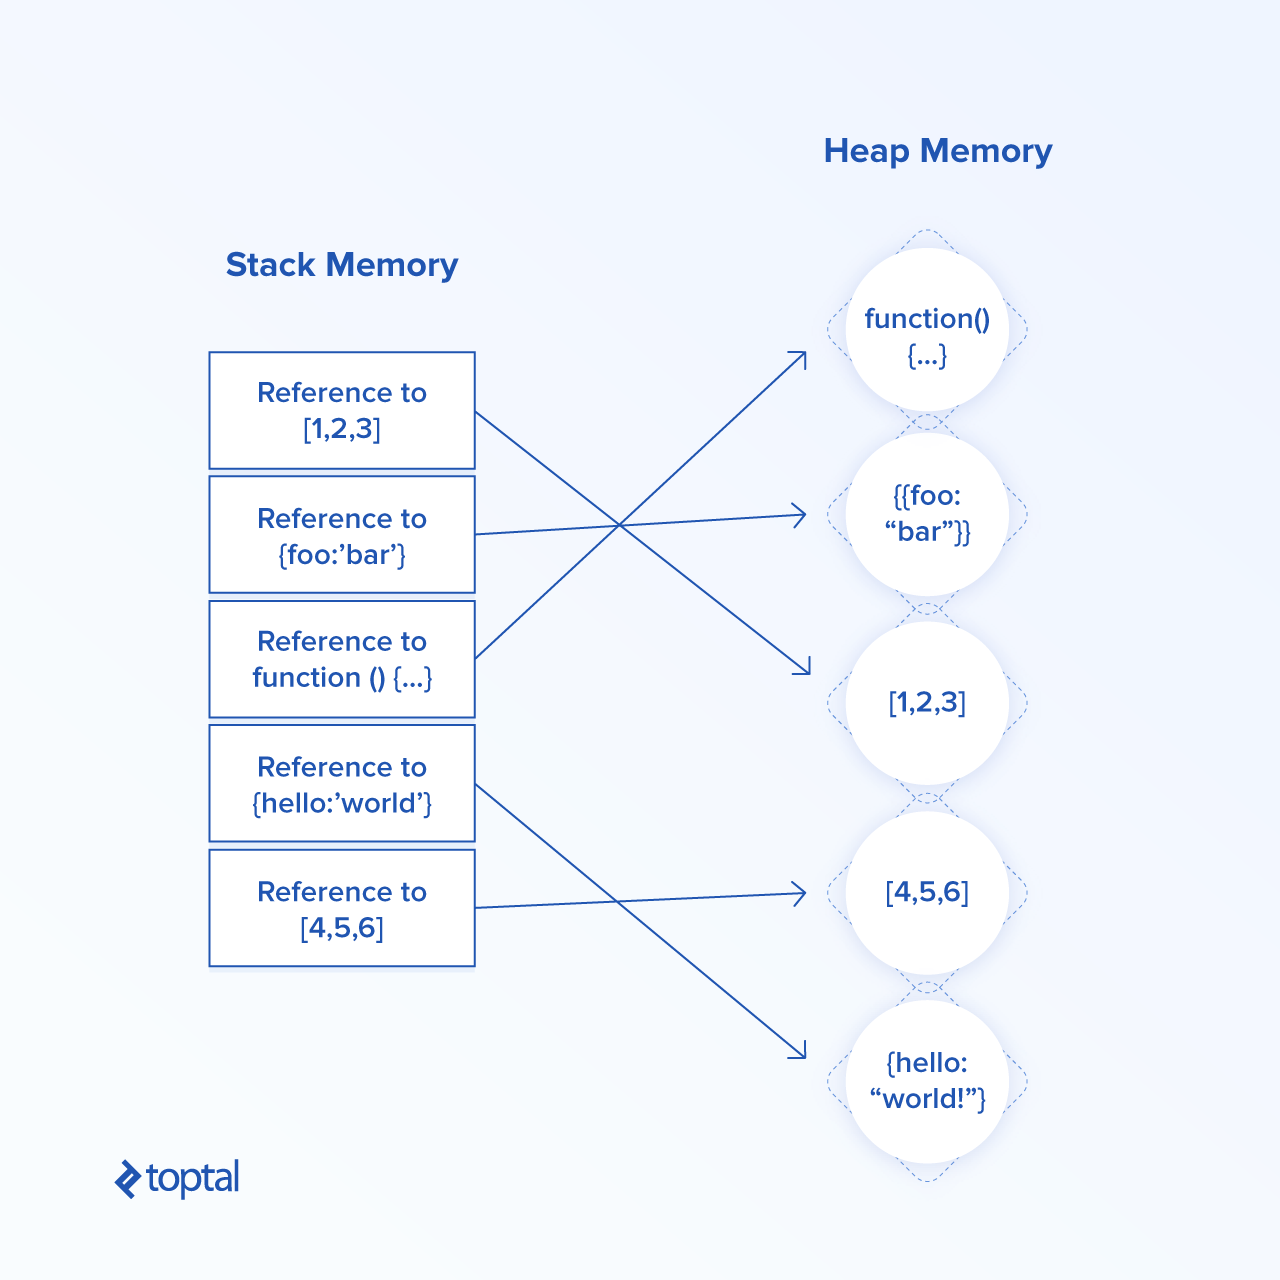 Stack Memory and Heap Memory